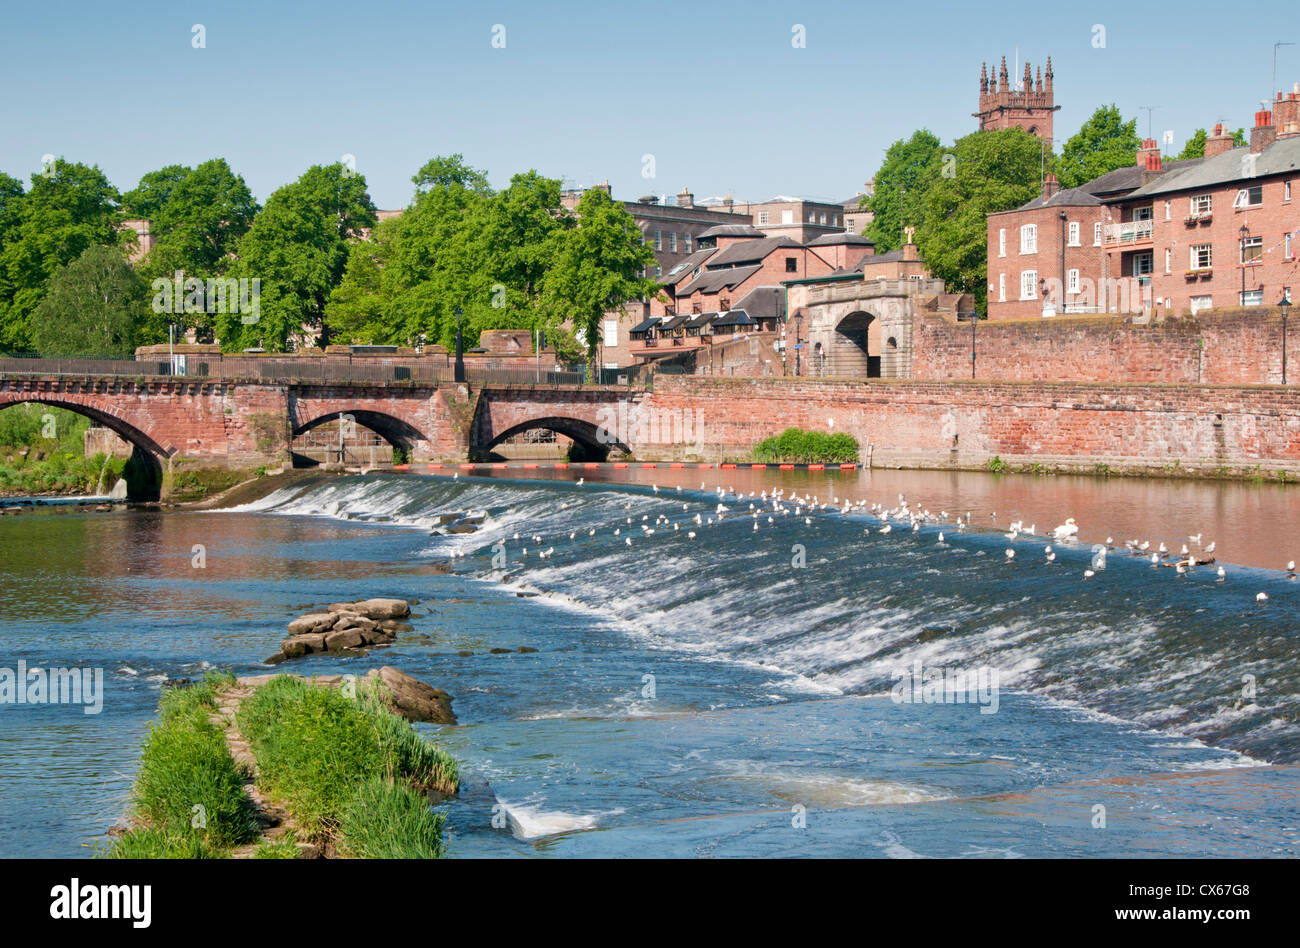 The Old Dee Bridge, Bridgegate, River Dee Weir & Salmon Leap, Chester, Cheshire, England, UK Stock Photo